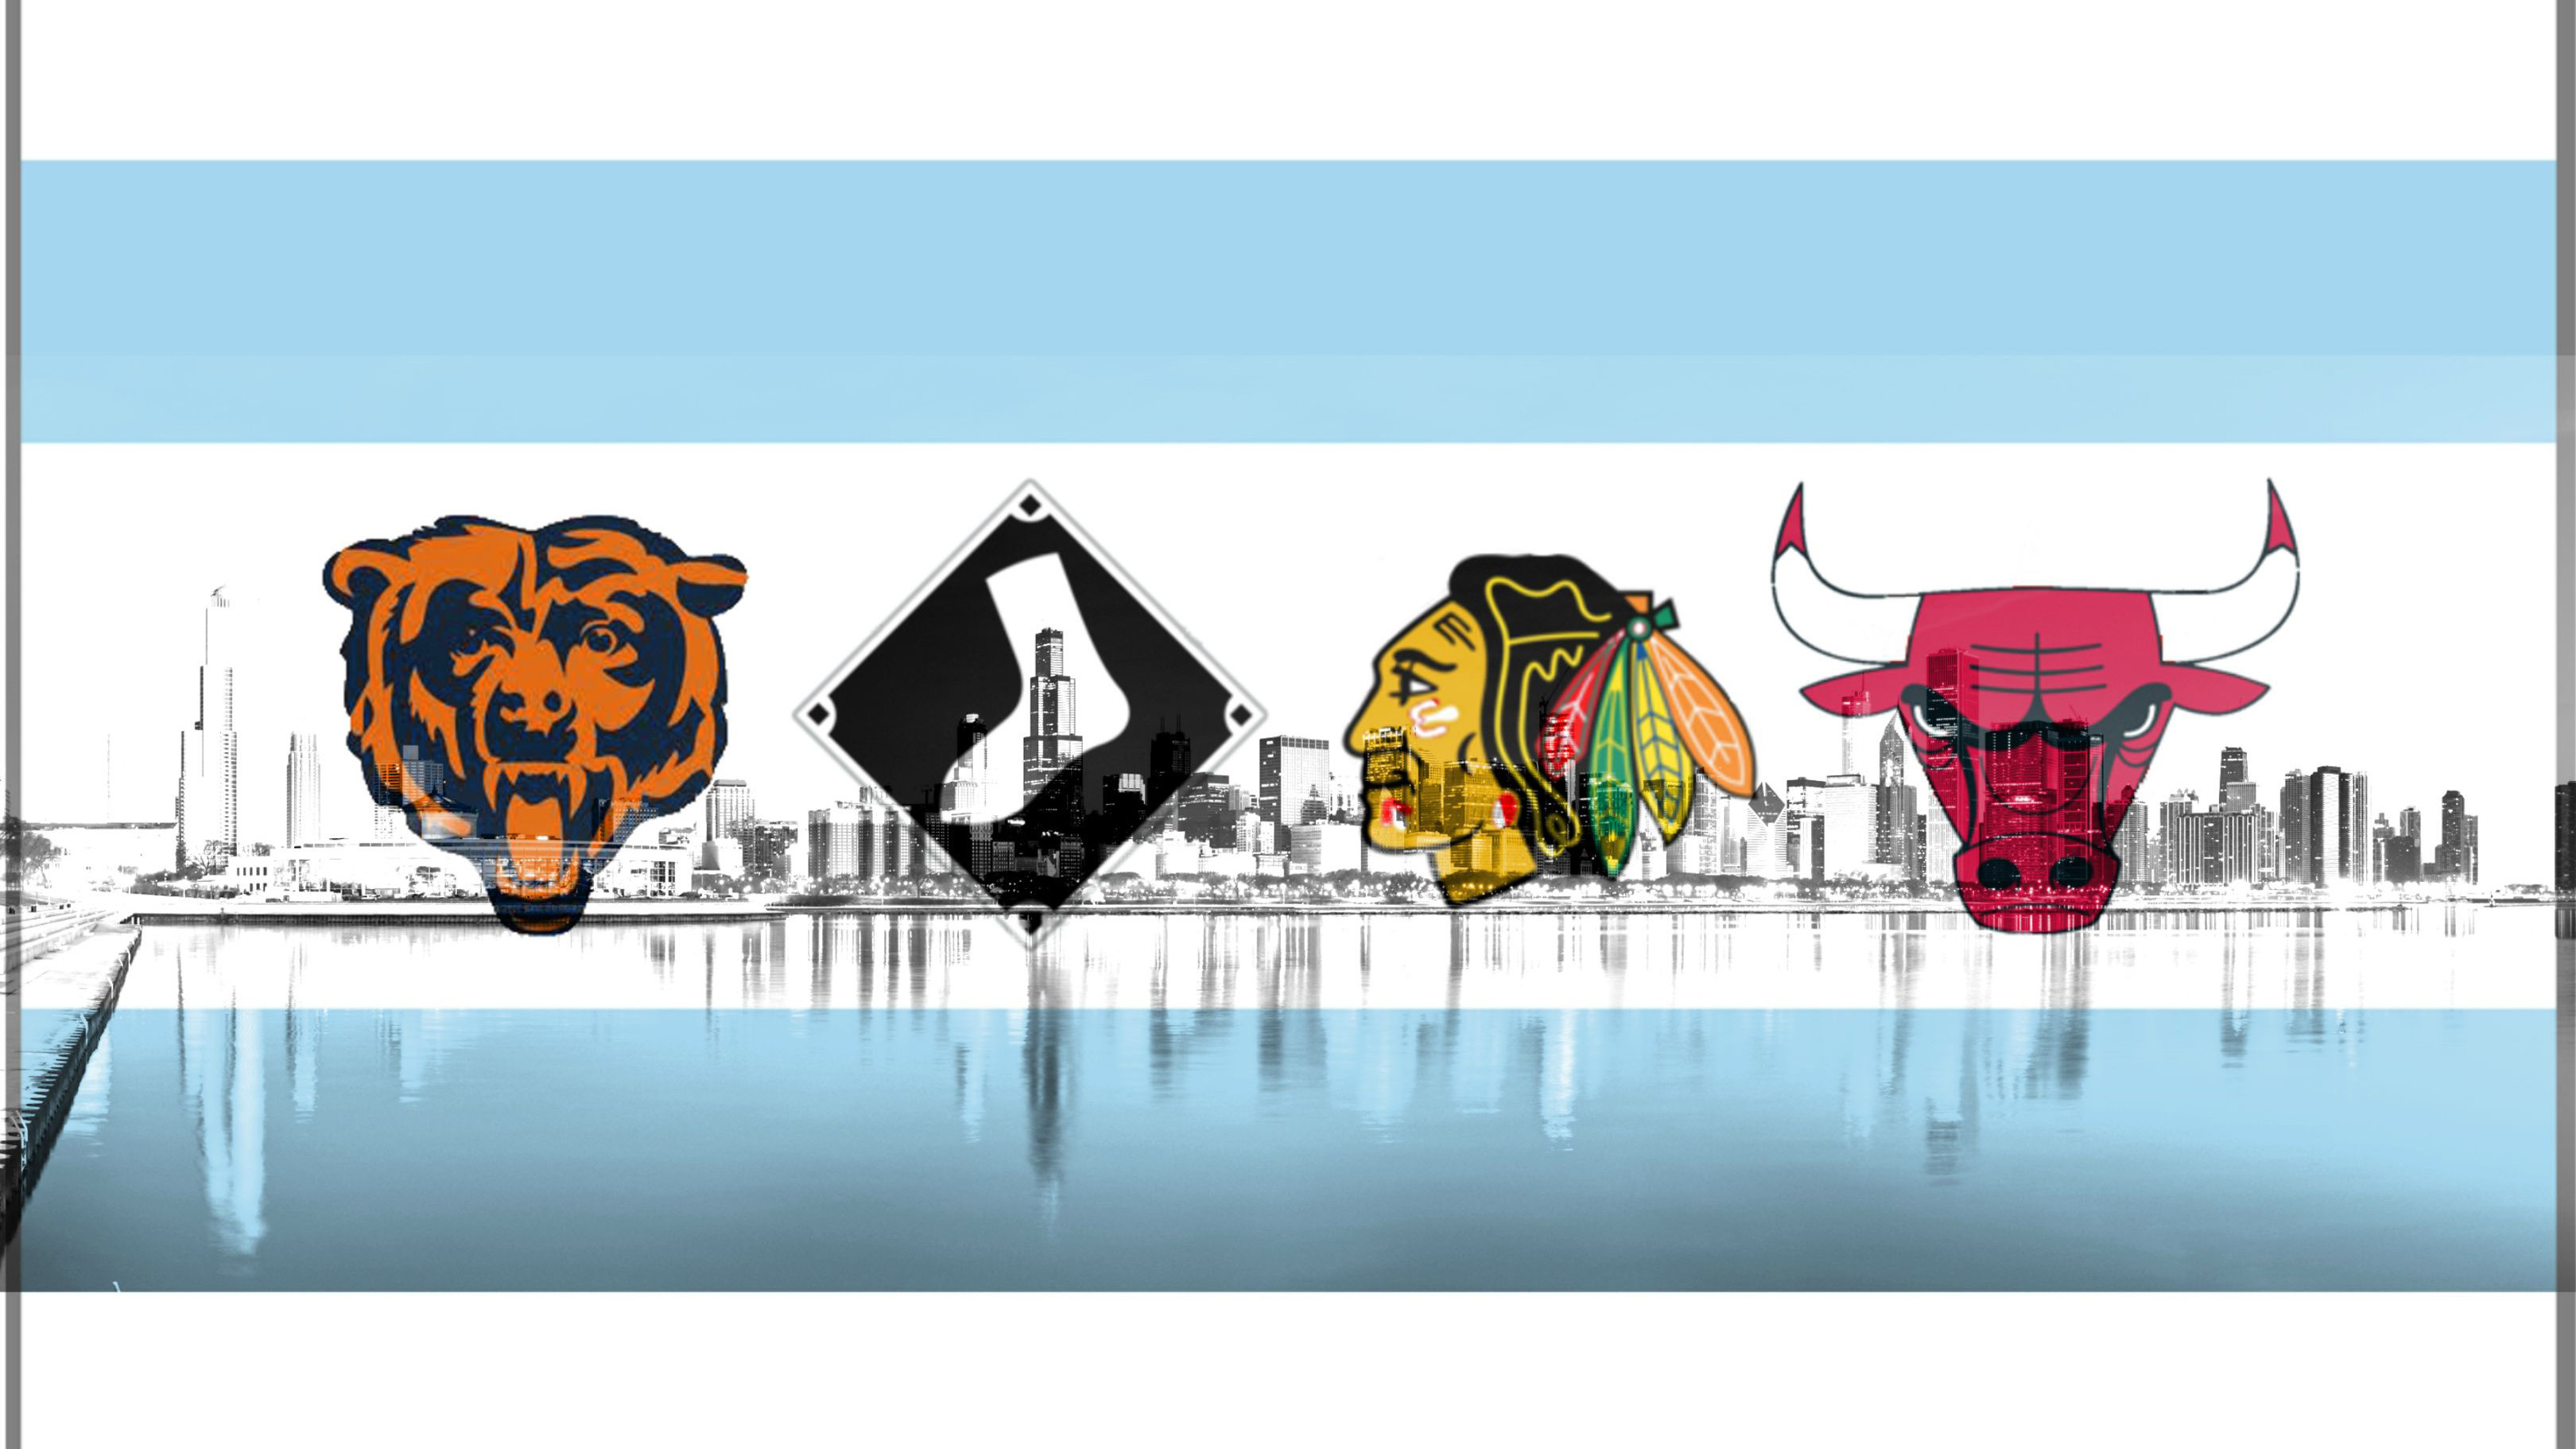 3240x1822 Chicago sports teams wallpaper. Chicago Sports Photos.